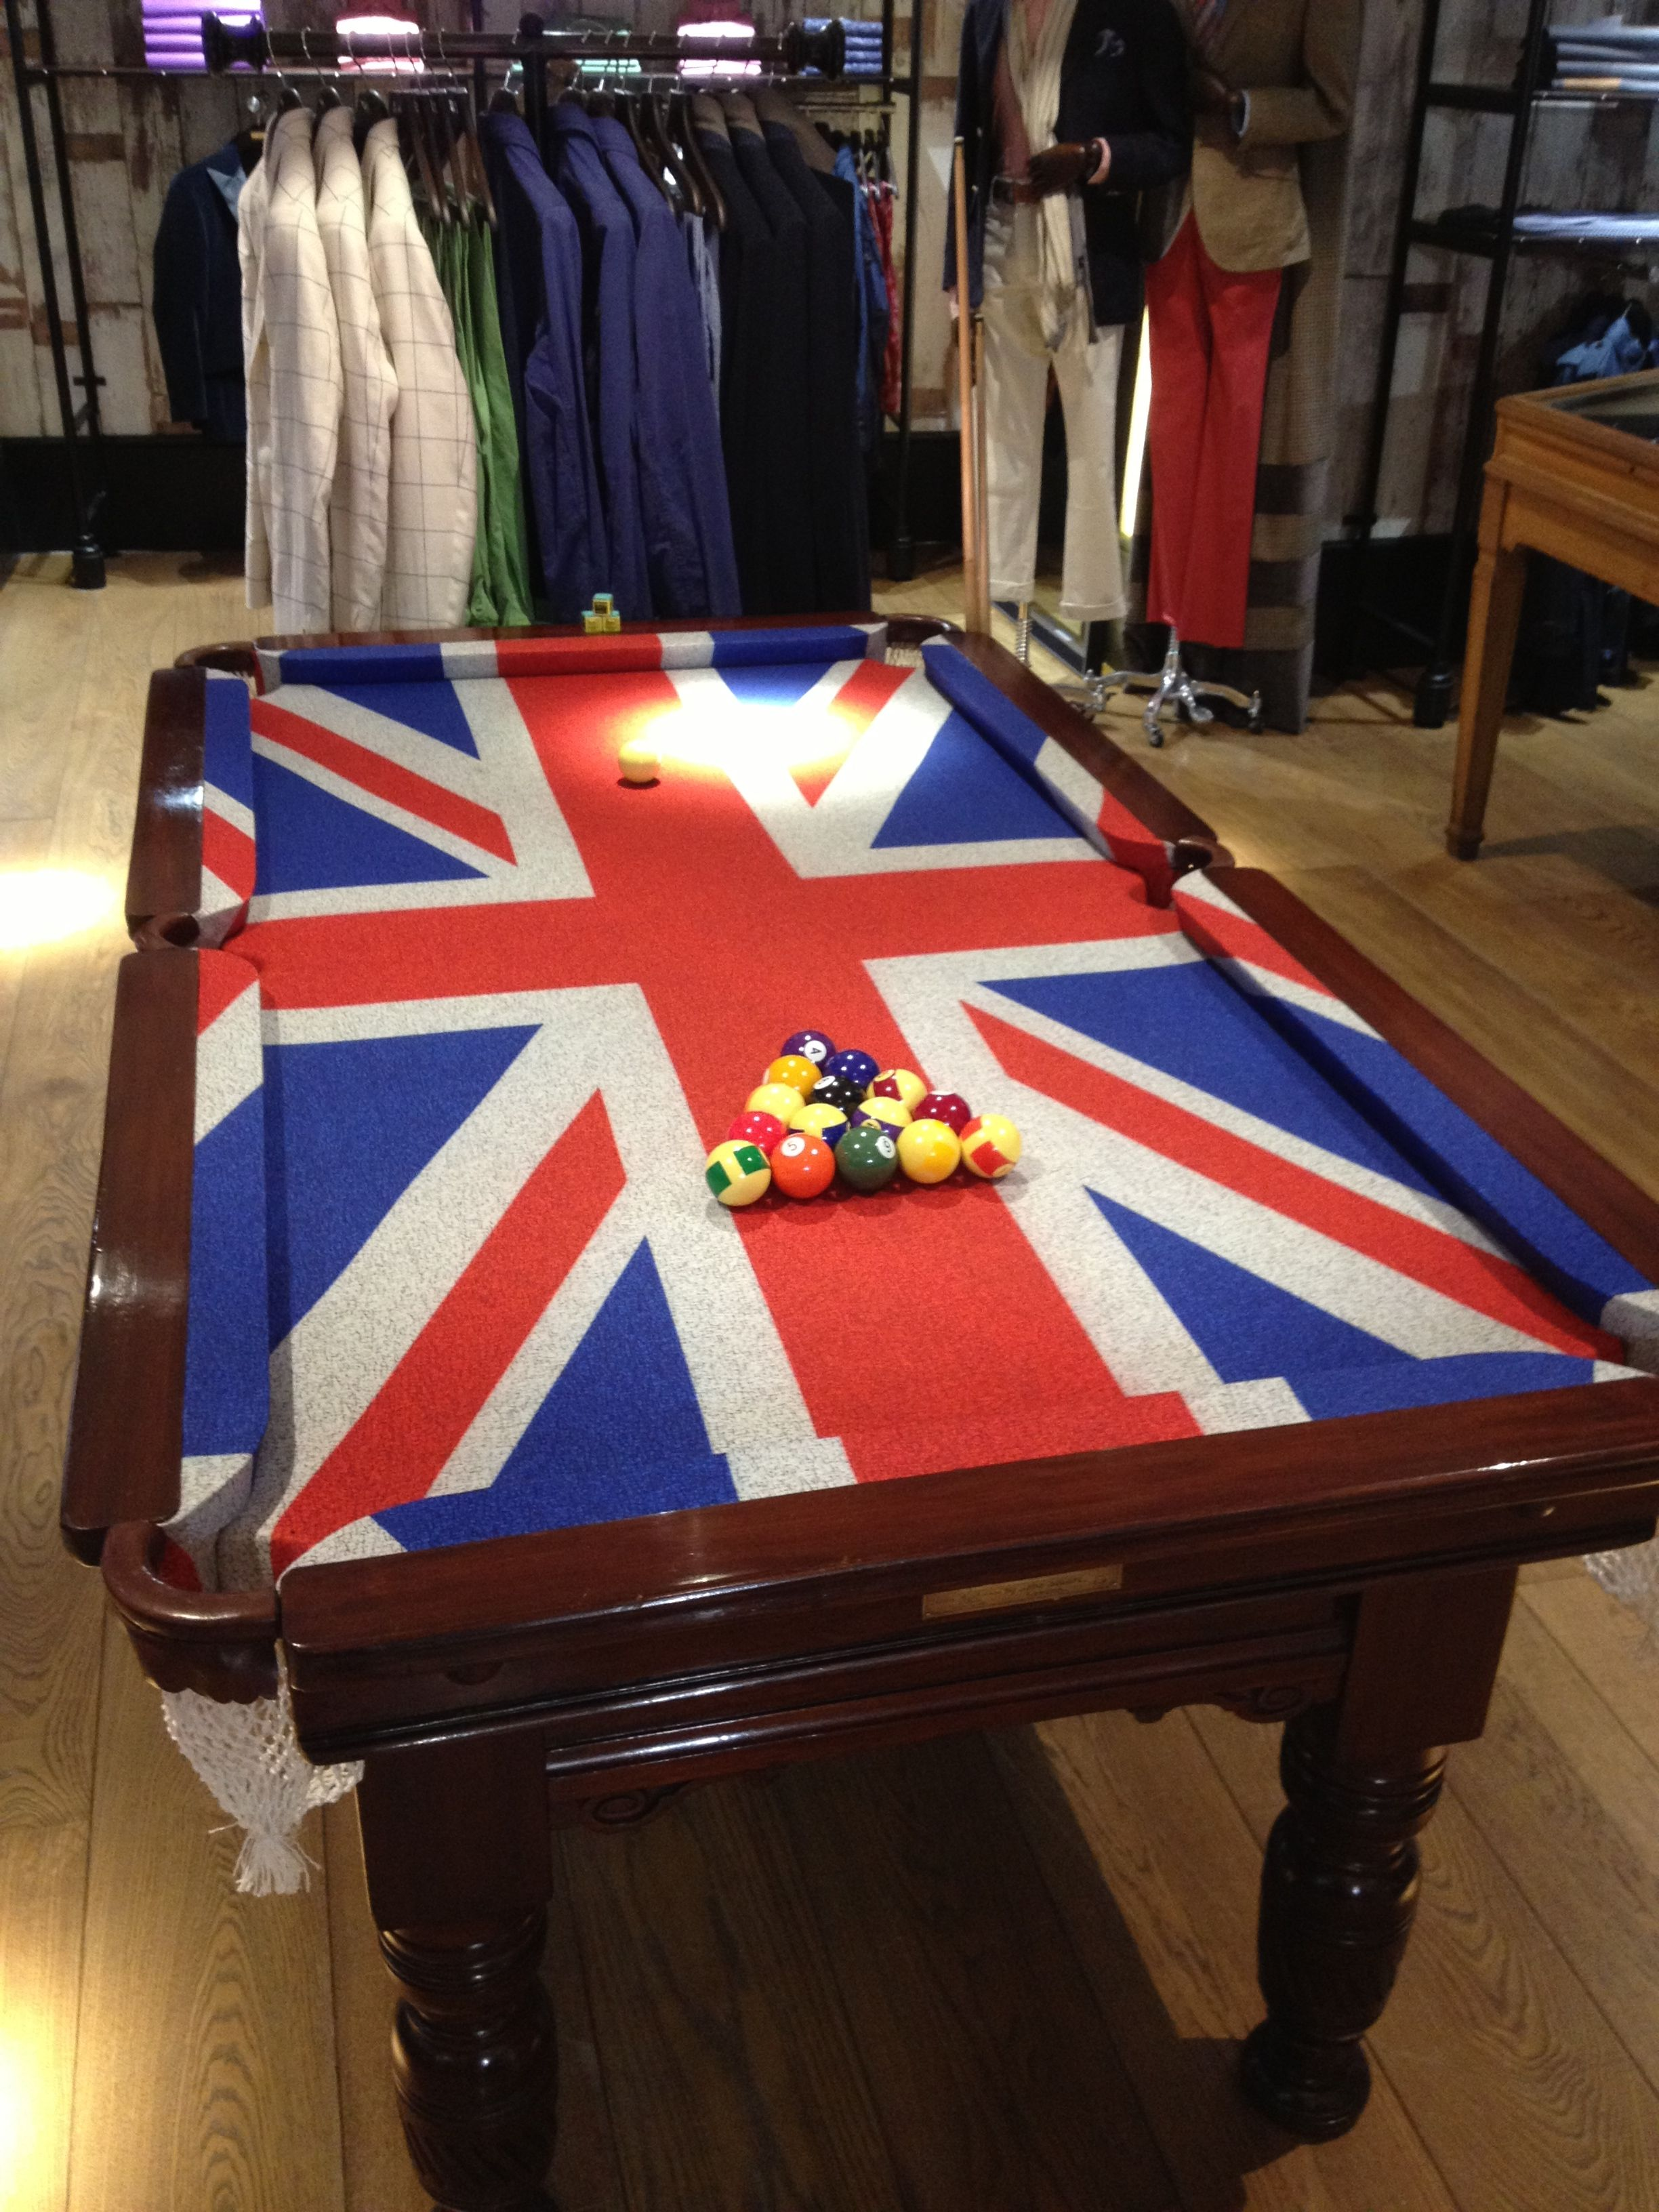 Antique Snooker Pool Table With Union Jack Cloth At Hackett